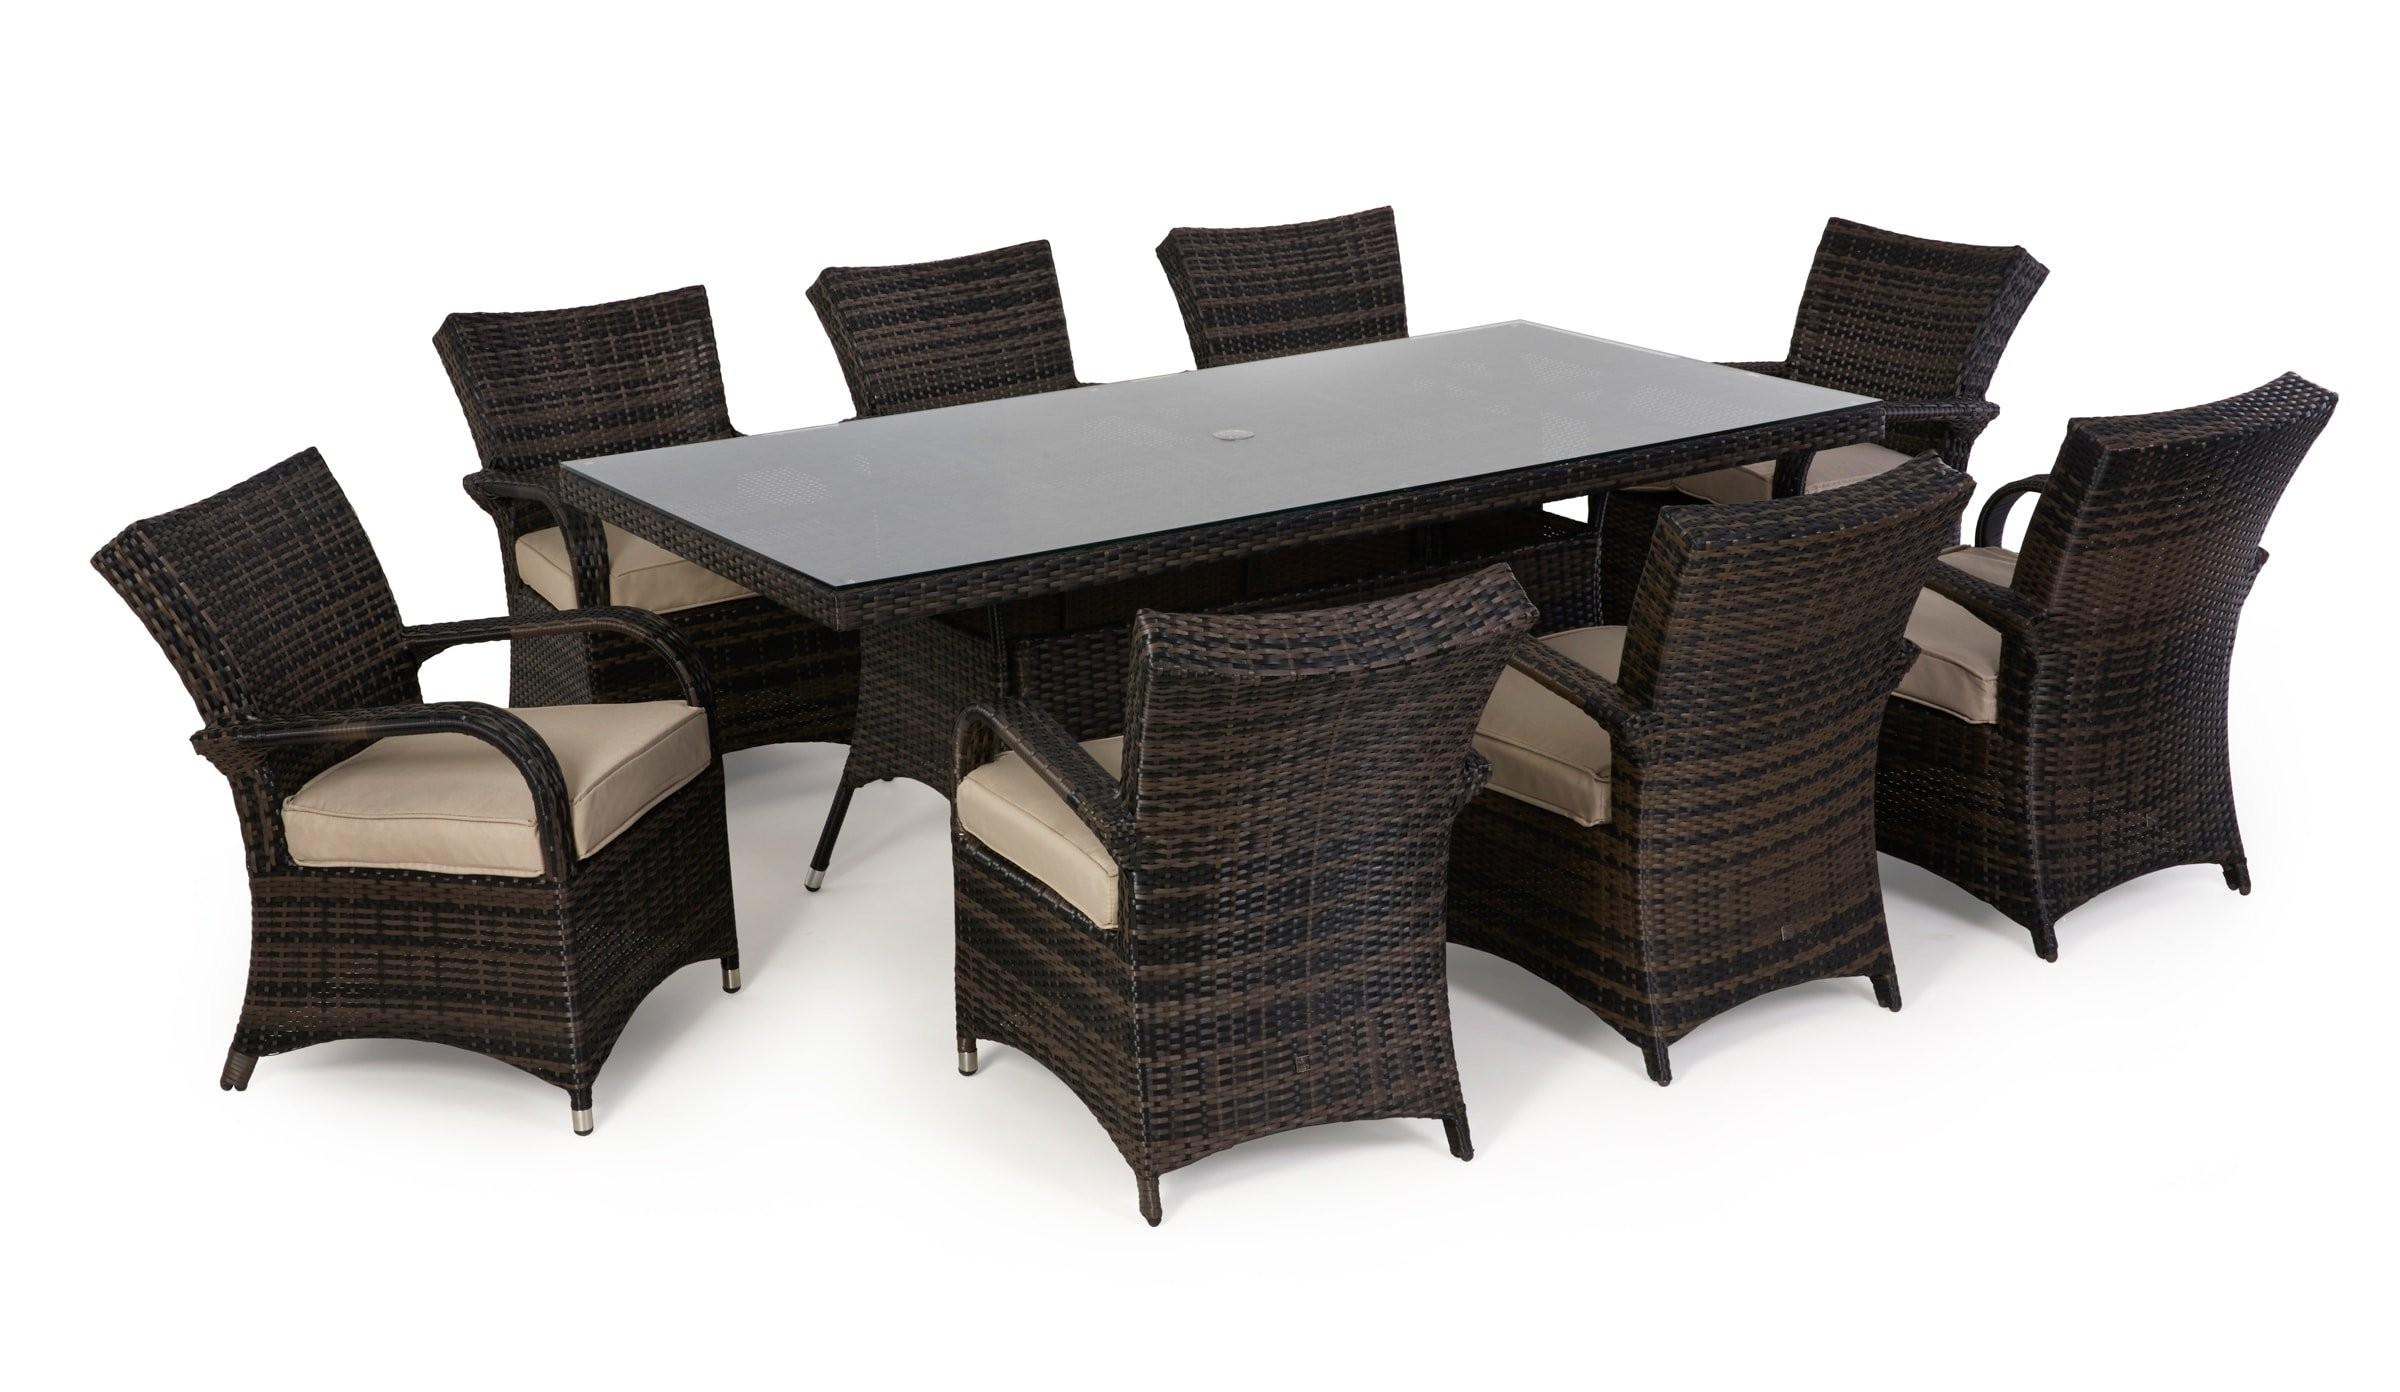 Maze Rattan Texas 8 Seat Rectangular Garden Dining Set